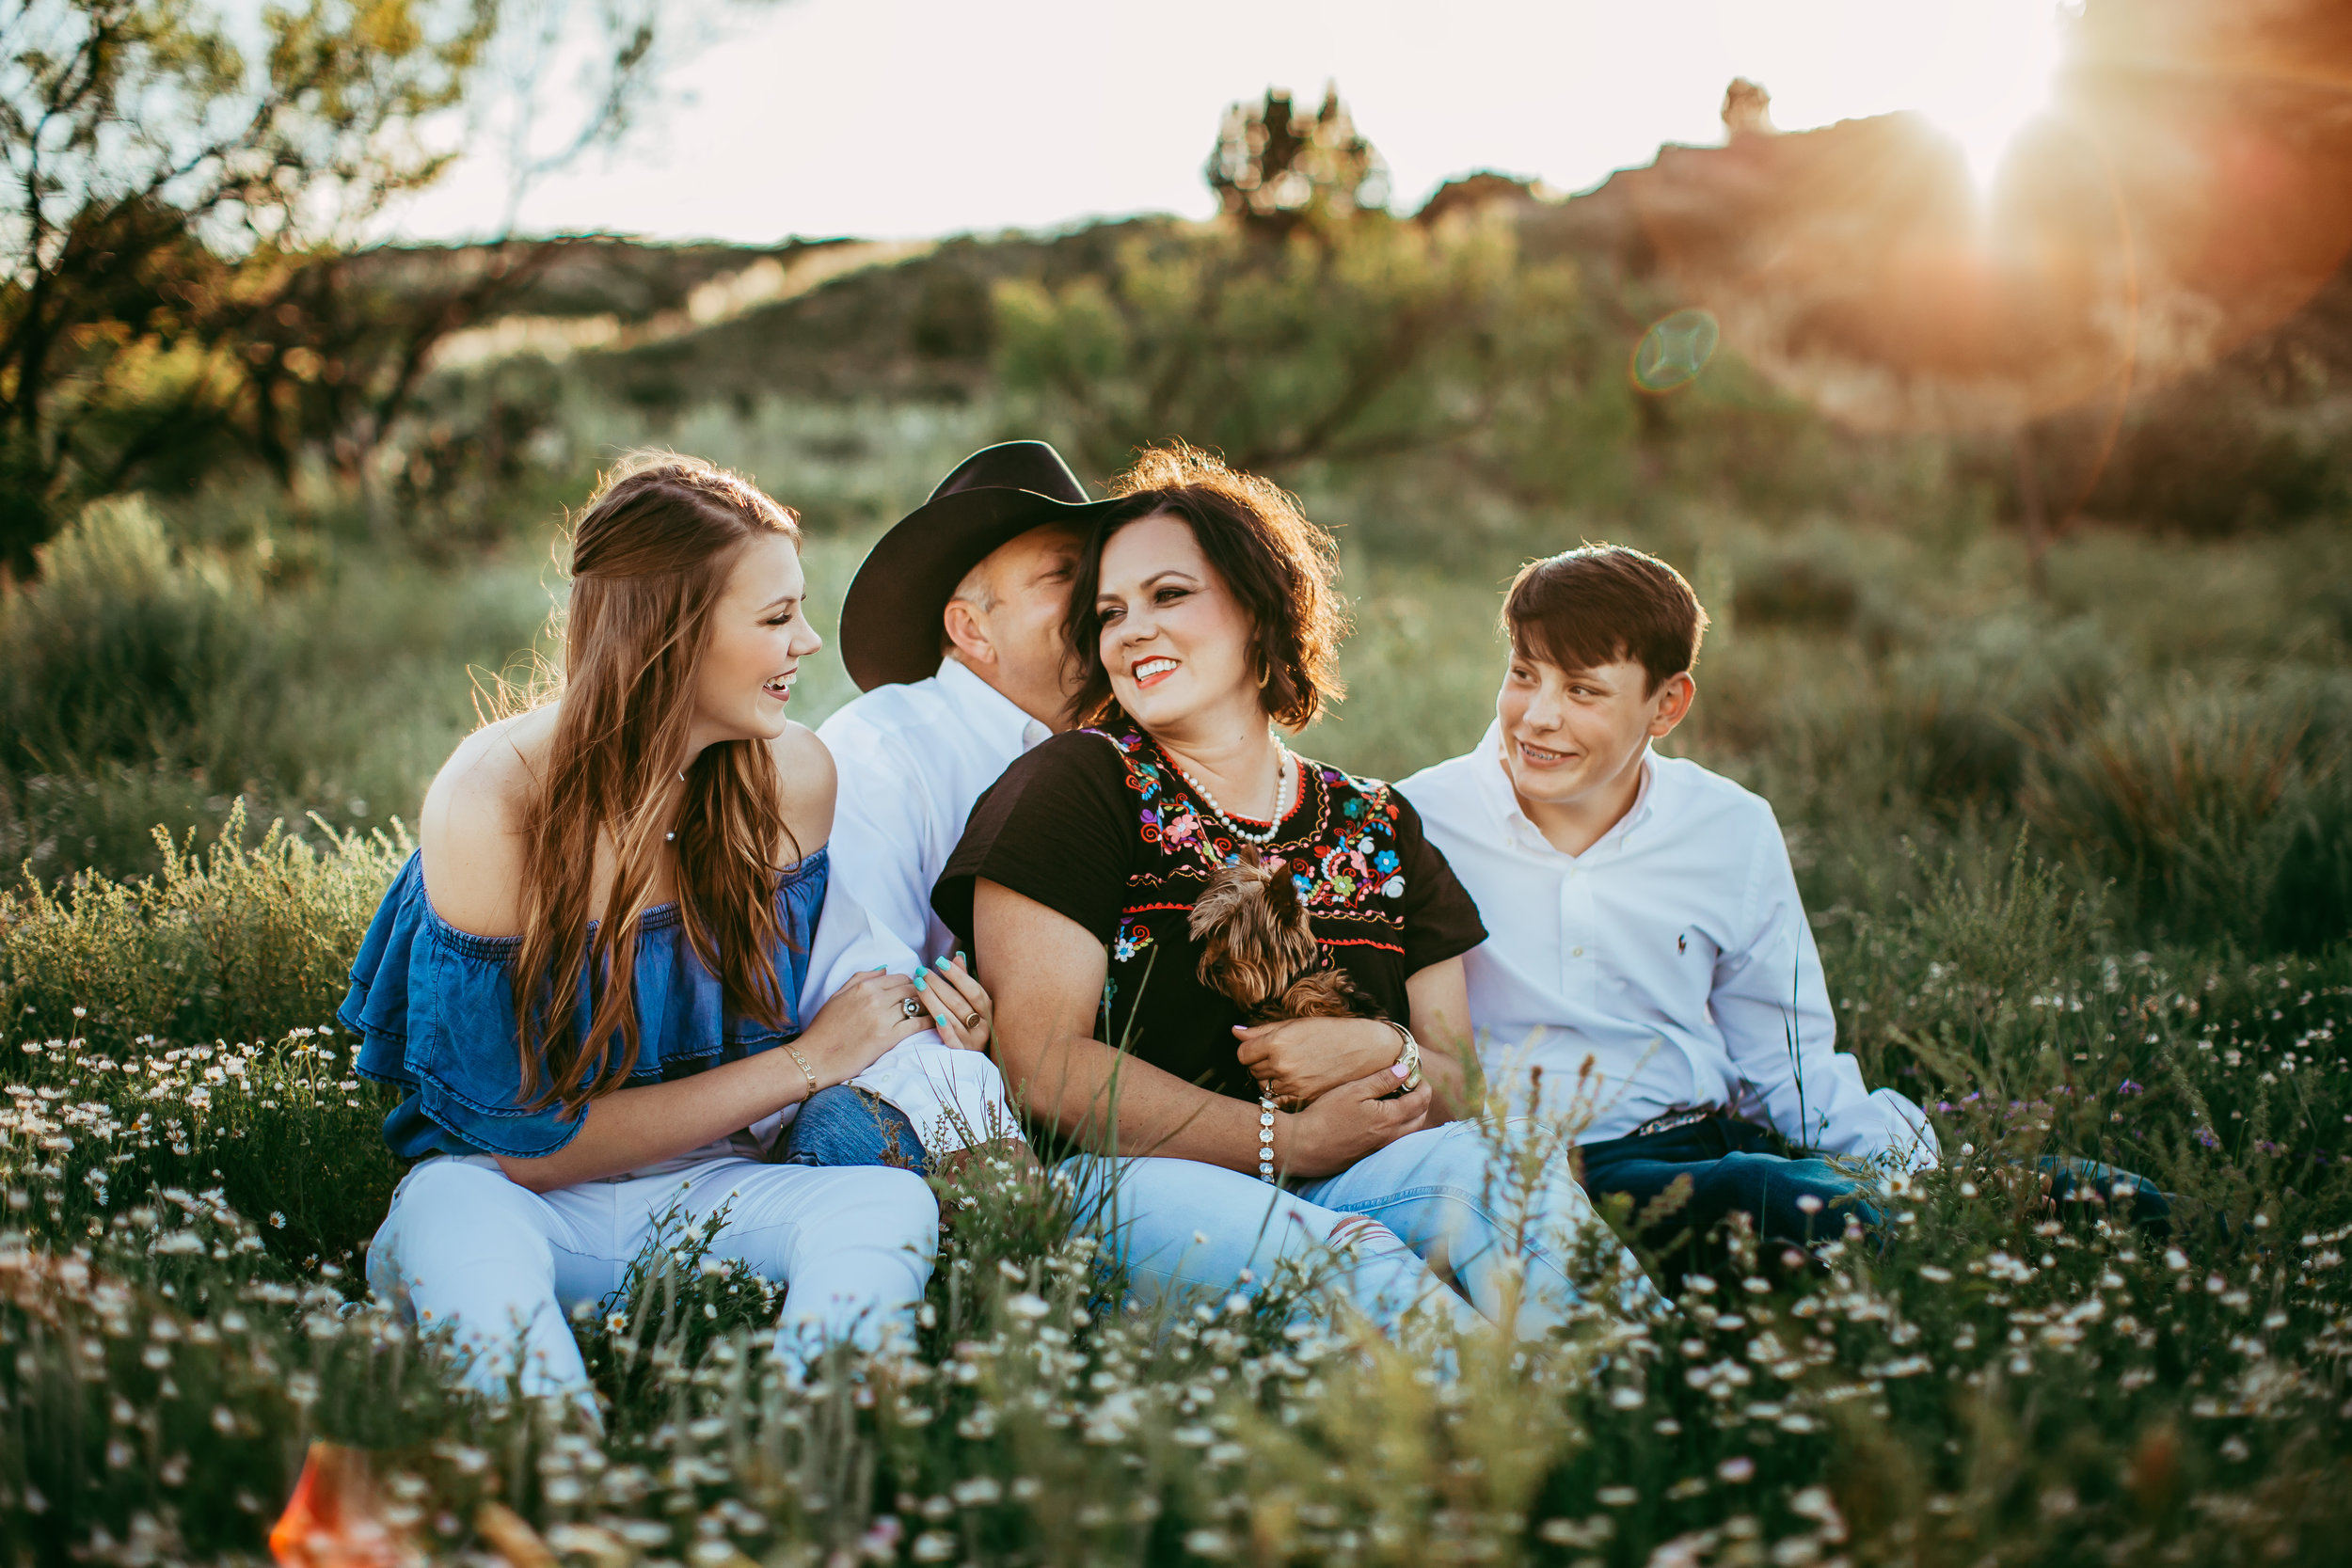 Family sitting together for family photo session on family ranch #tealawardphotography #texaslocationchoice #amarillophotographer #amarillofamilyphotographer #emotionalphotography #engagementphotography #couplesphotography #pickingaphotosessionlocation #whatsimportant #everythingtogether #pickingcolorsforphotos #location #photosessionlocation